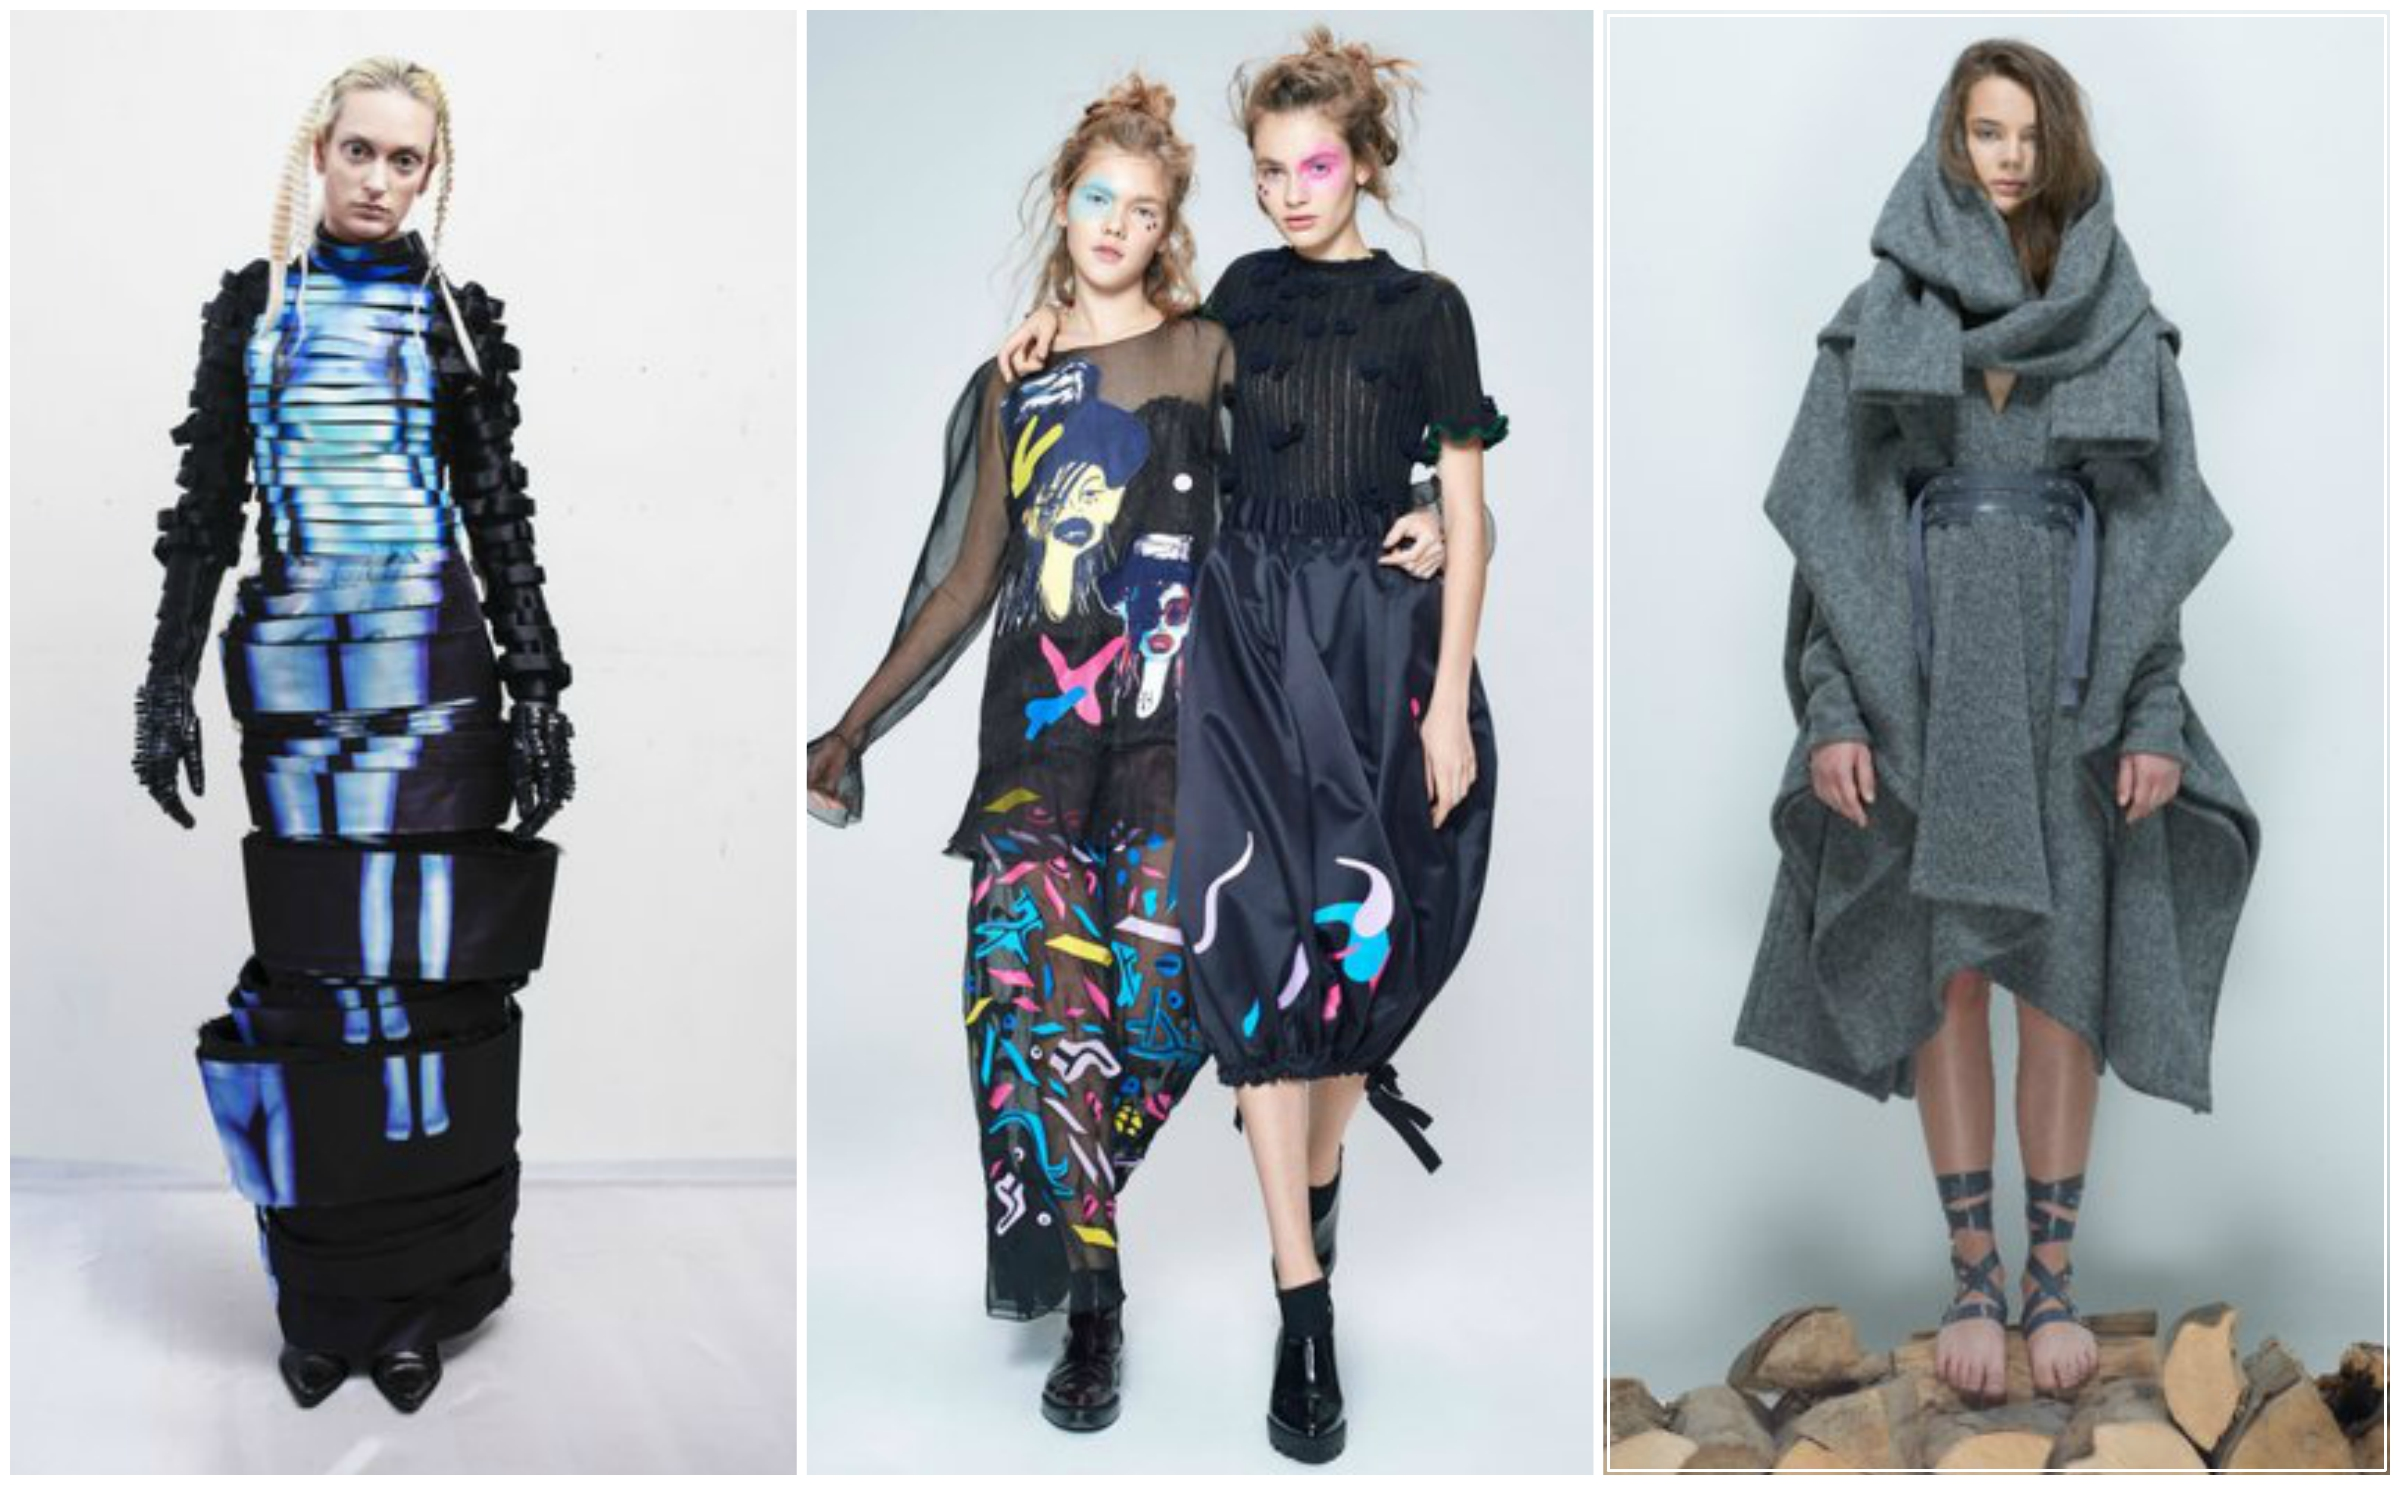 Looks from Austria, Ukraine, and Slovakia Utopias